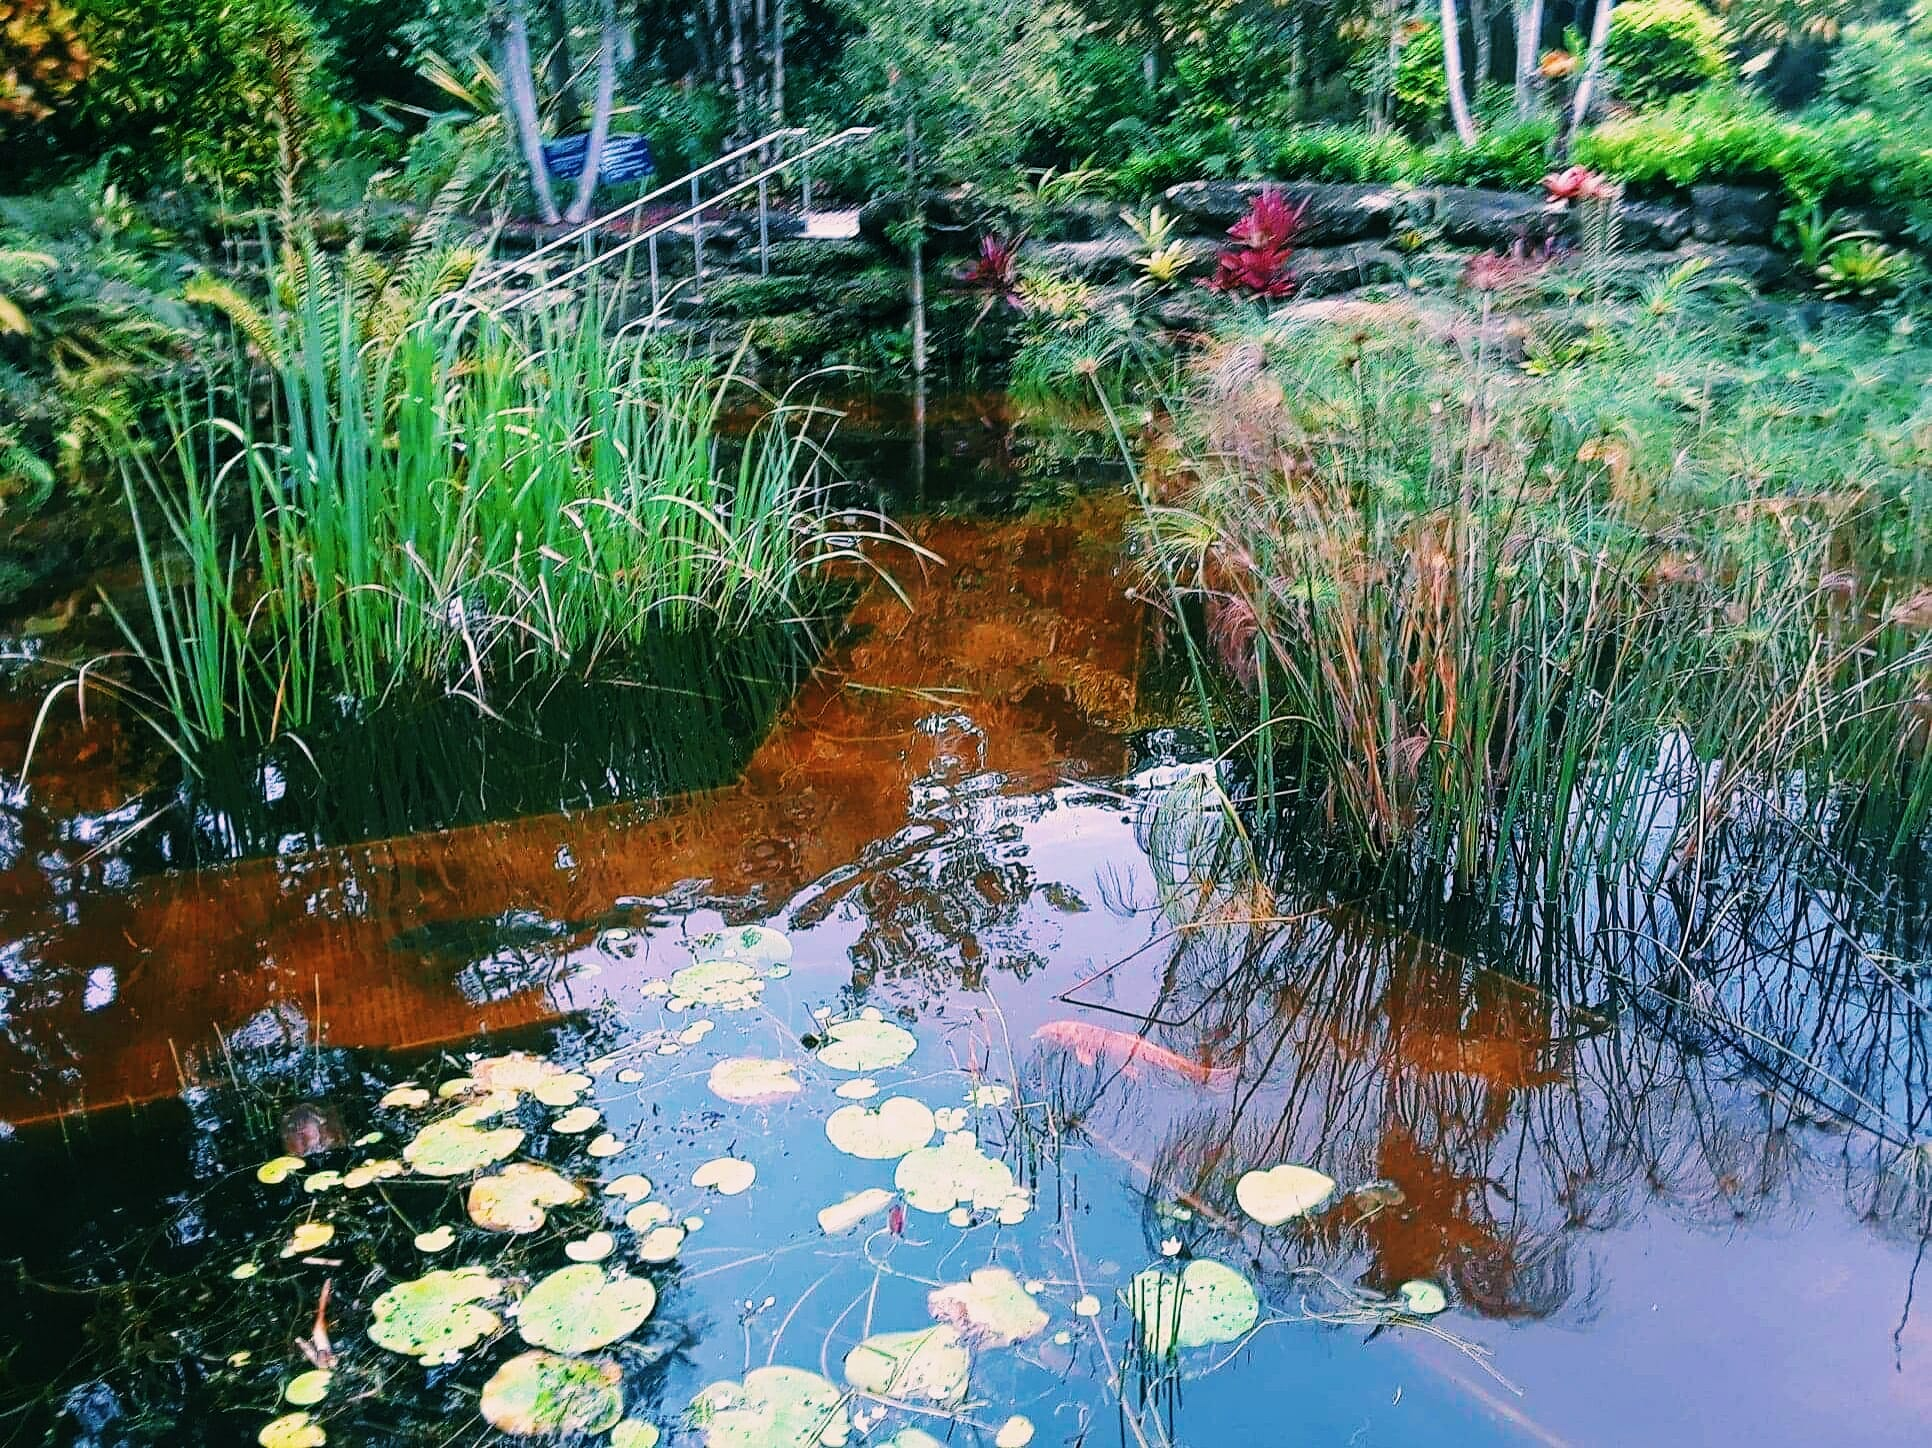 Mounts Botanical Garden of Palm Beach County Says 'I Do' to Local Wedding Planners Seeking Lush & Luscious Outdoor Settings